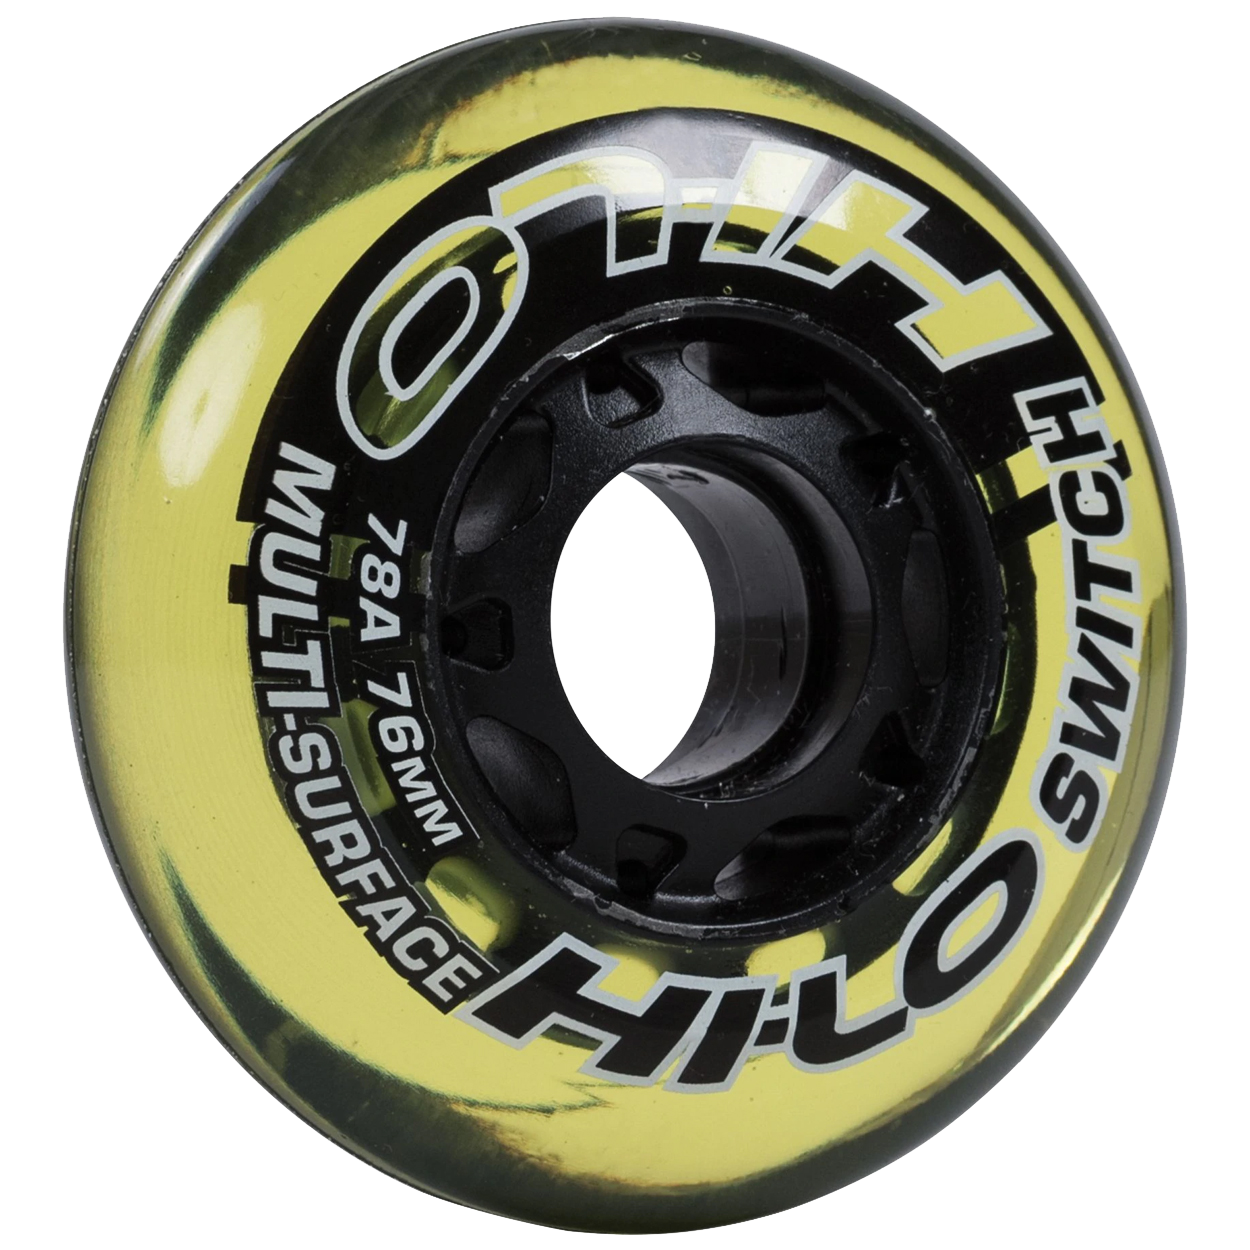 HI-LO SWITCH ROLLER HOCKEY WHEELS 4PK S16 (INDOOR / OUTDOOR),,moyen